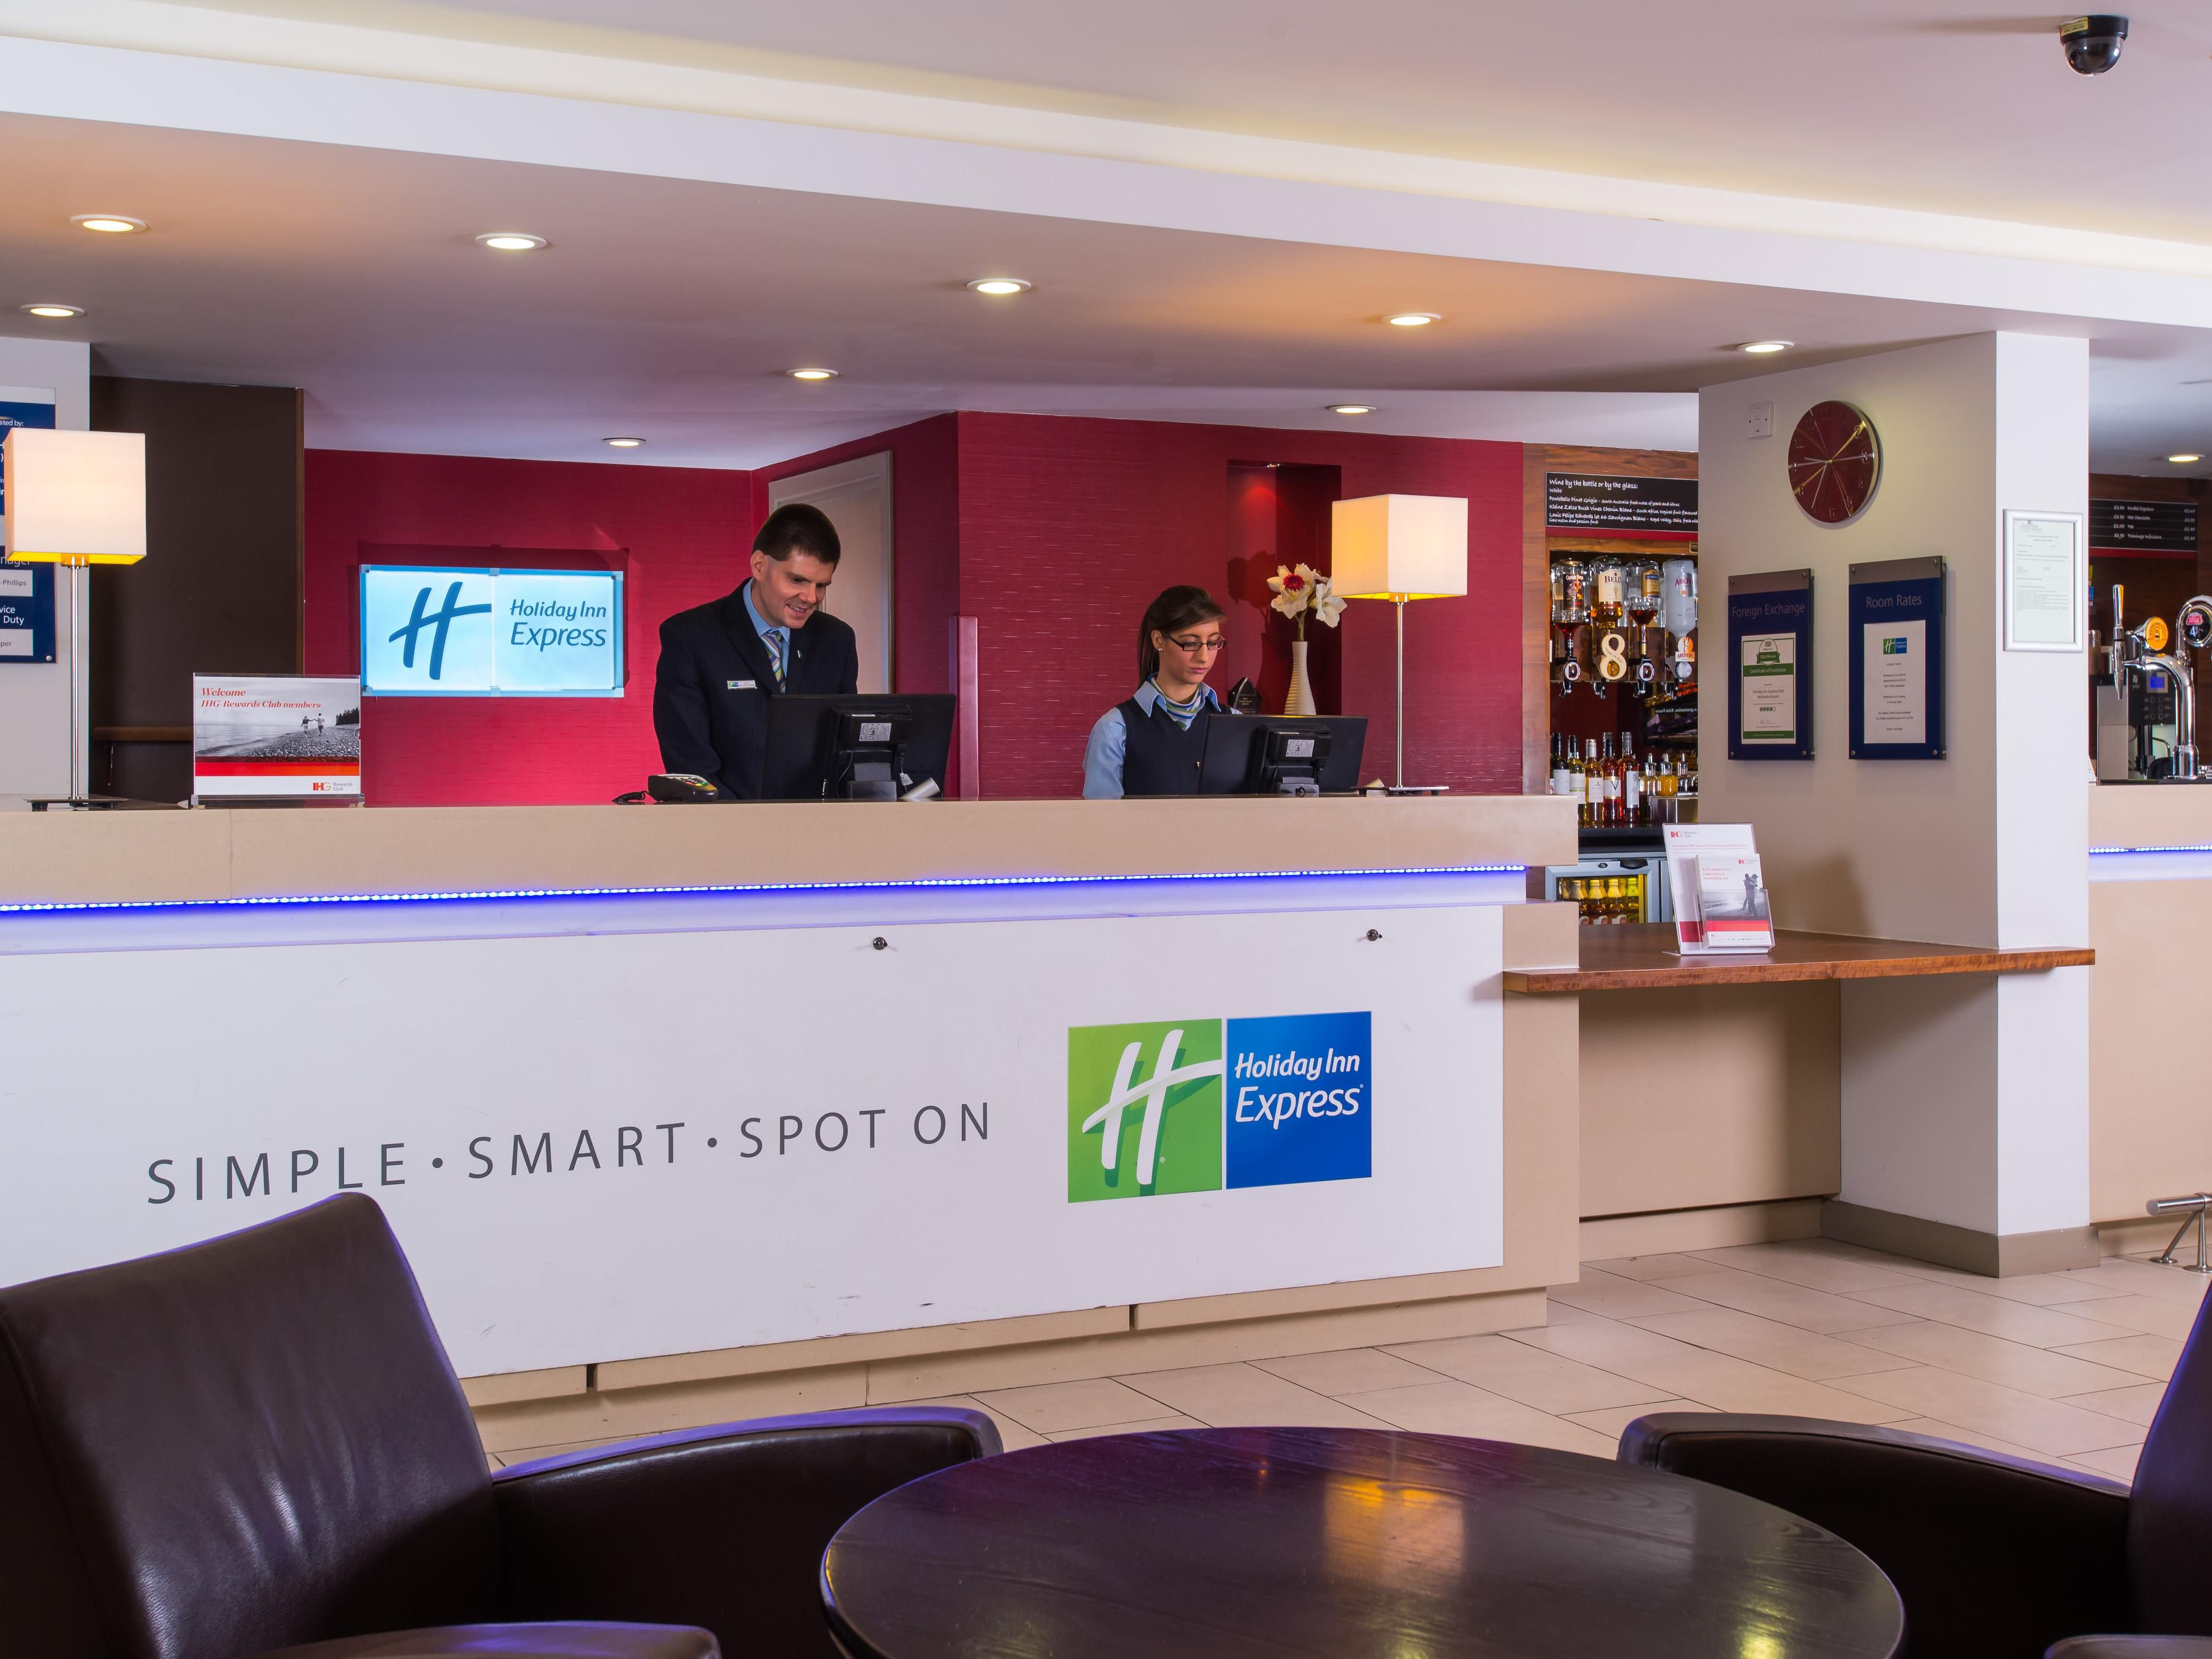 Reception at our East Midlands Airport hotel